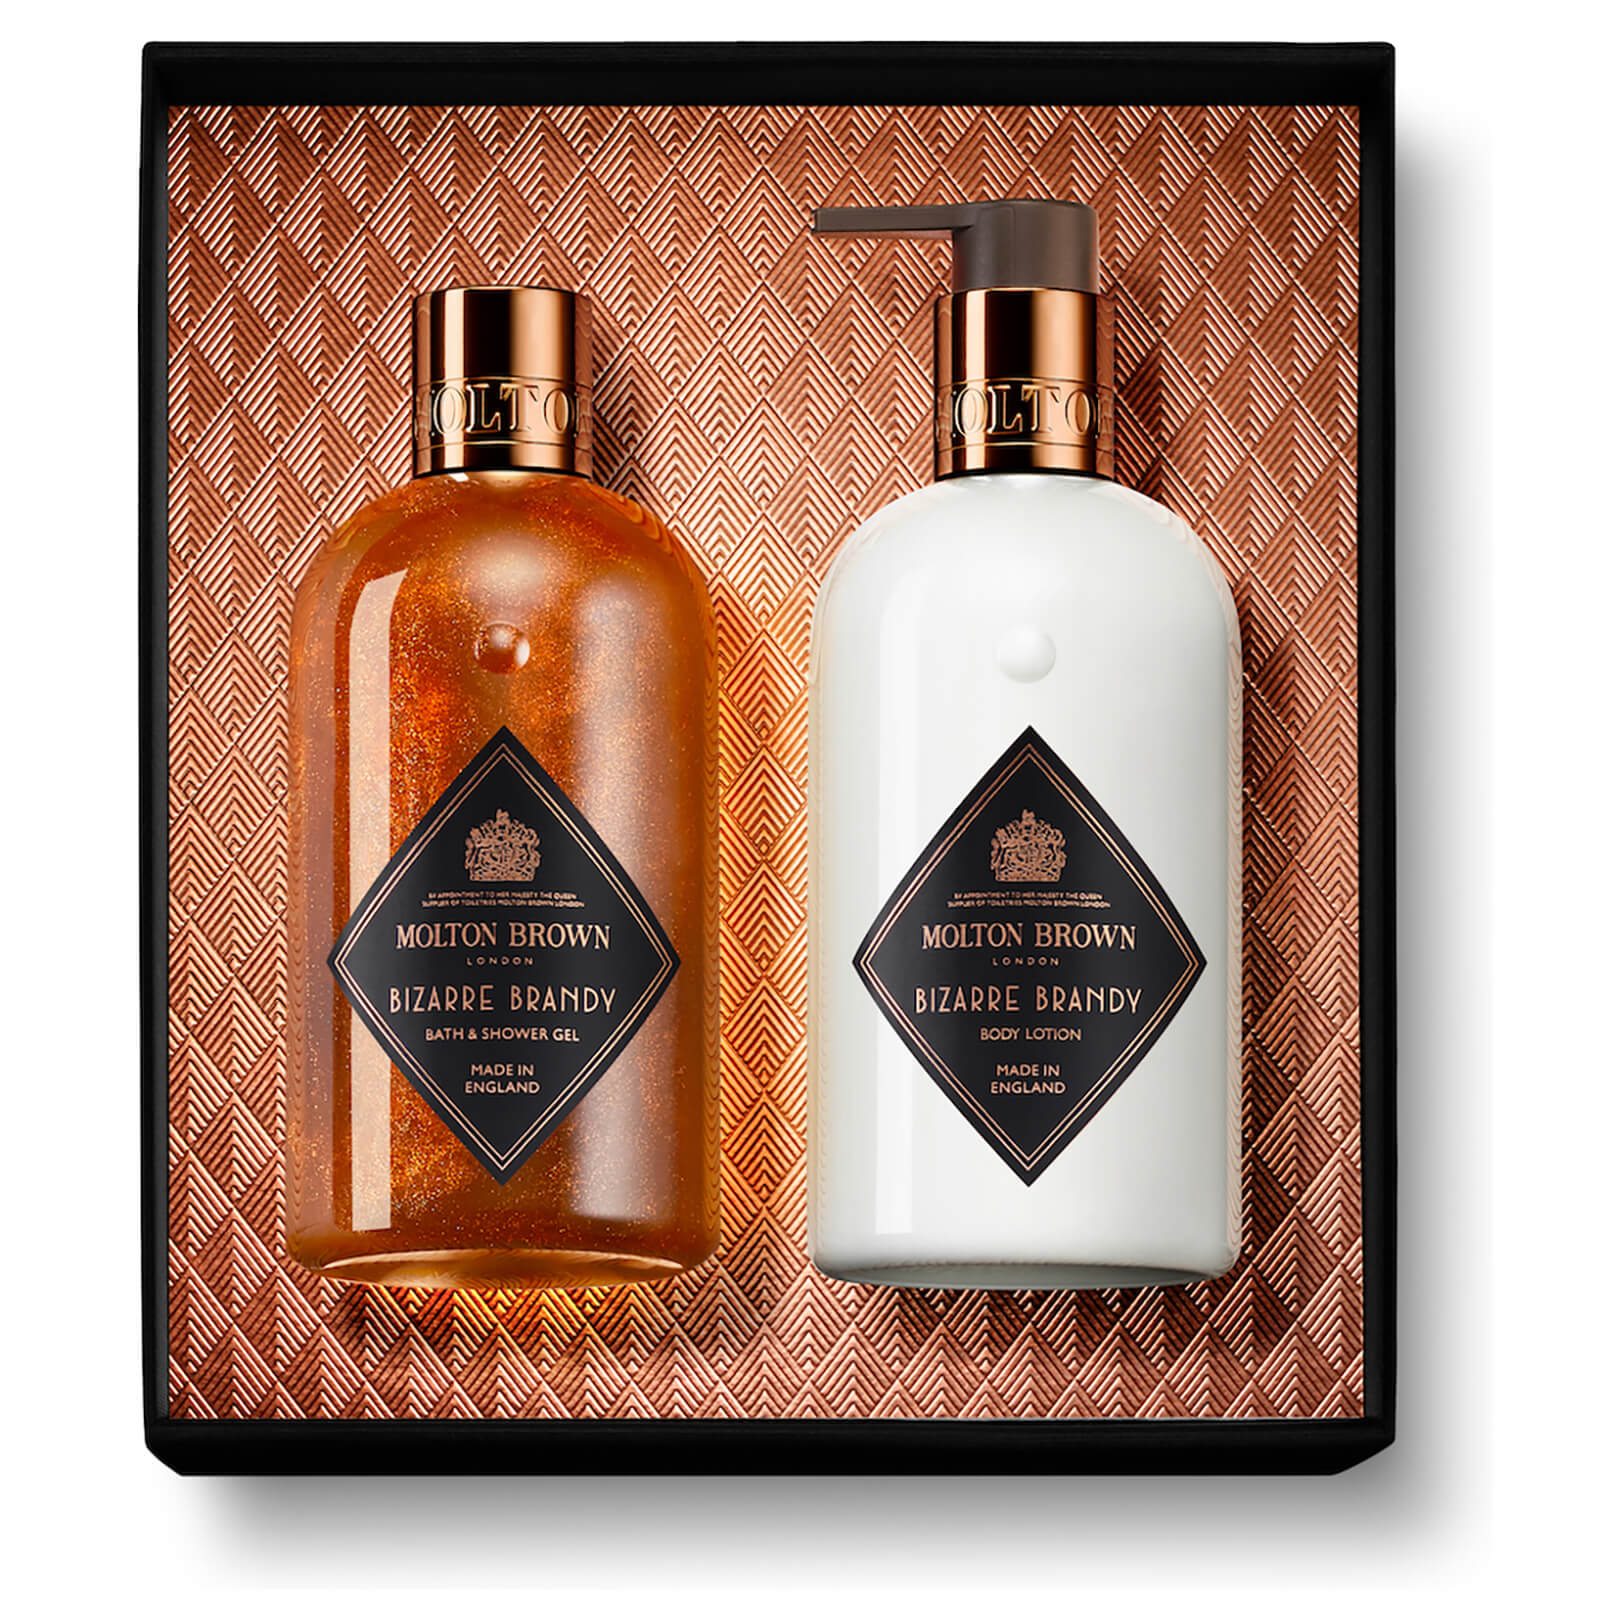 Mankind:Molton Brown 莫顿布朗 圣诞限量洗护产品